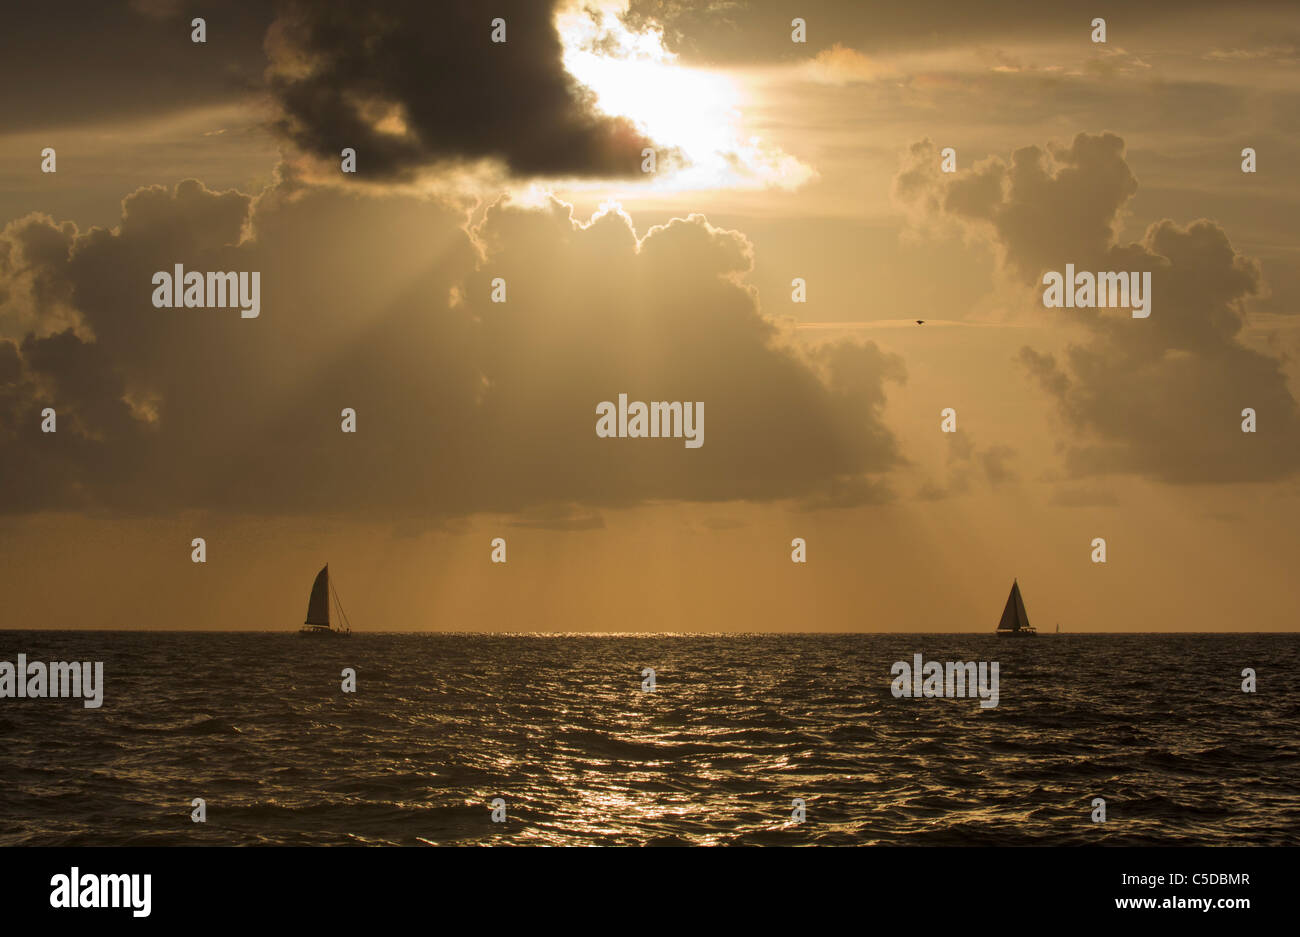 Sailboats off Marco Island in the Gulf of Mexico - Stock Image